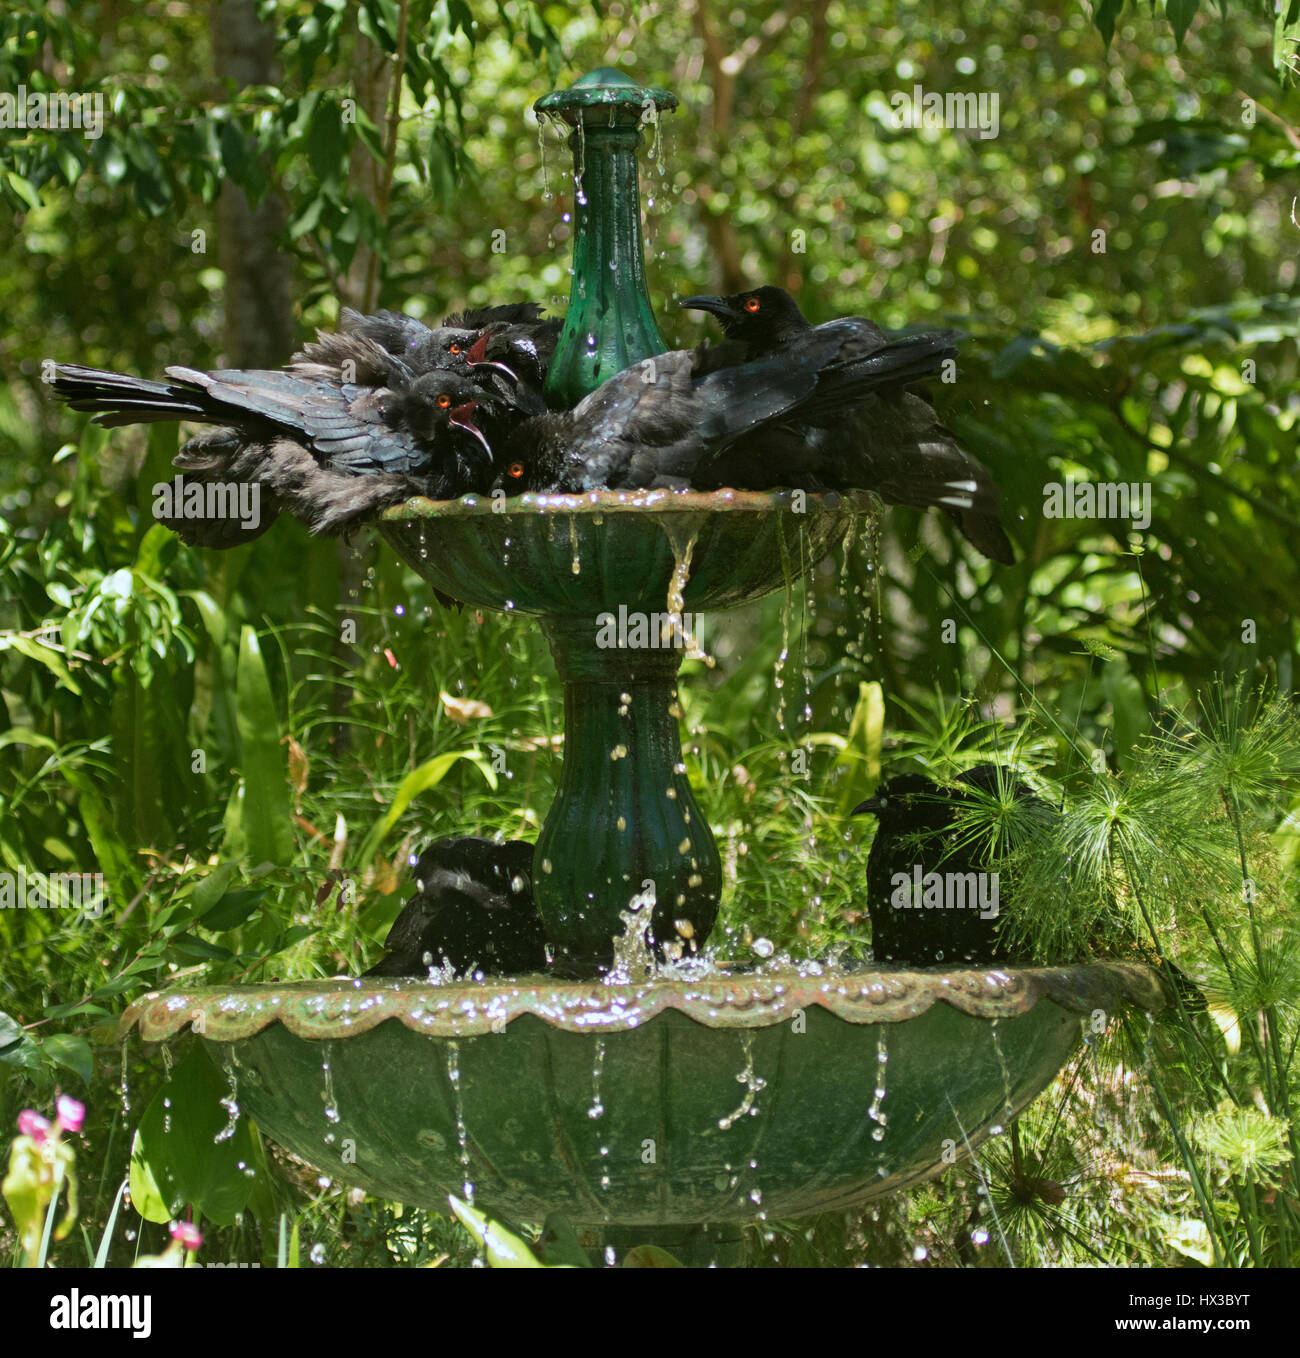 Humorous view of family of white-winged choughs Corcorax melanorhamphos cooling off in running water of garden fountain Stock Photo